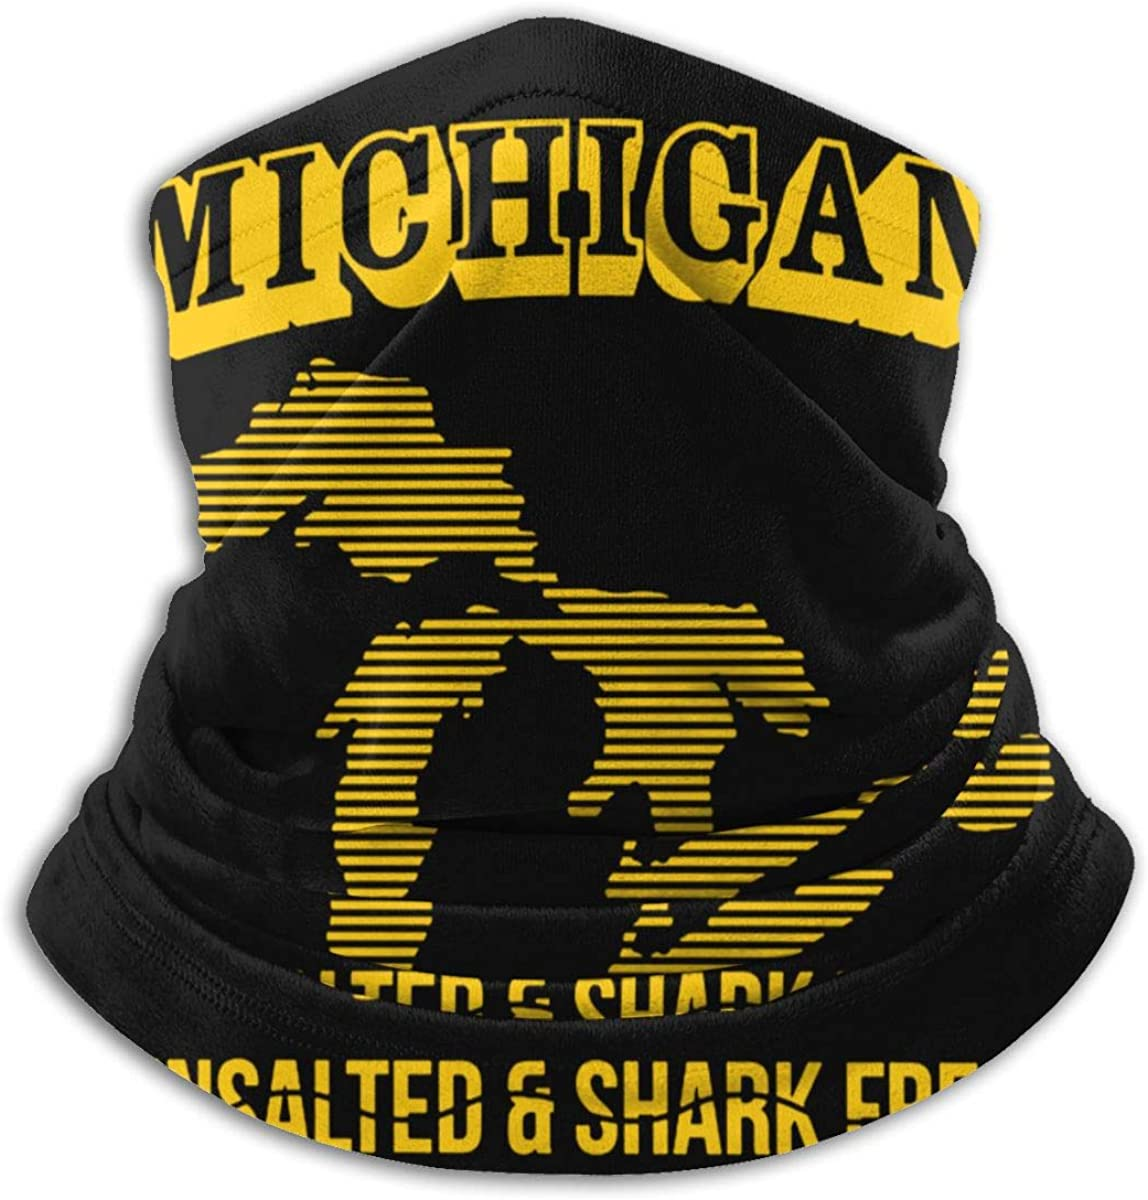 Michigan Unsalted Shark Free Balaclava Breathable Face Mask Scarf Microfiber Neck Warmer for Unisex